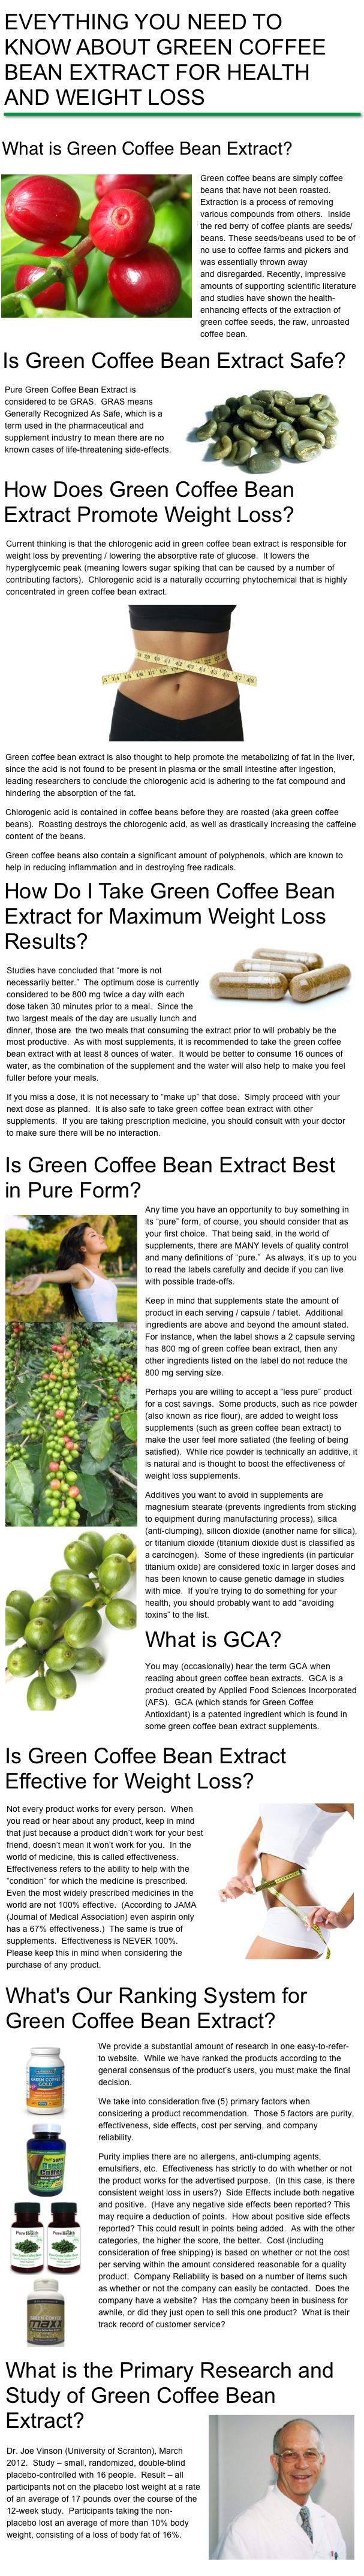 Everything you need to know about Green Coffee Bean Extract for health and weight loss  http://www.shavethepounds.com/caralluma-burn-reviews/